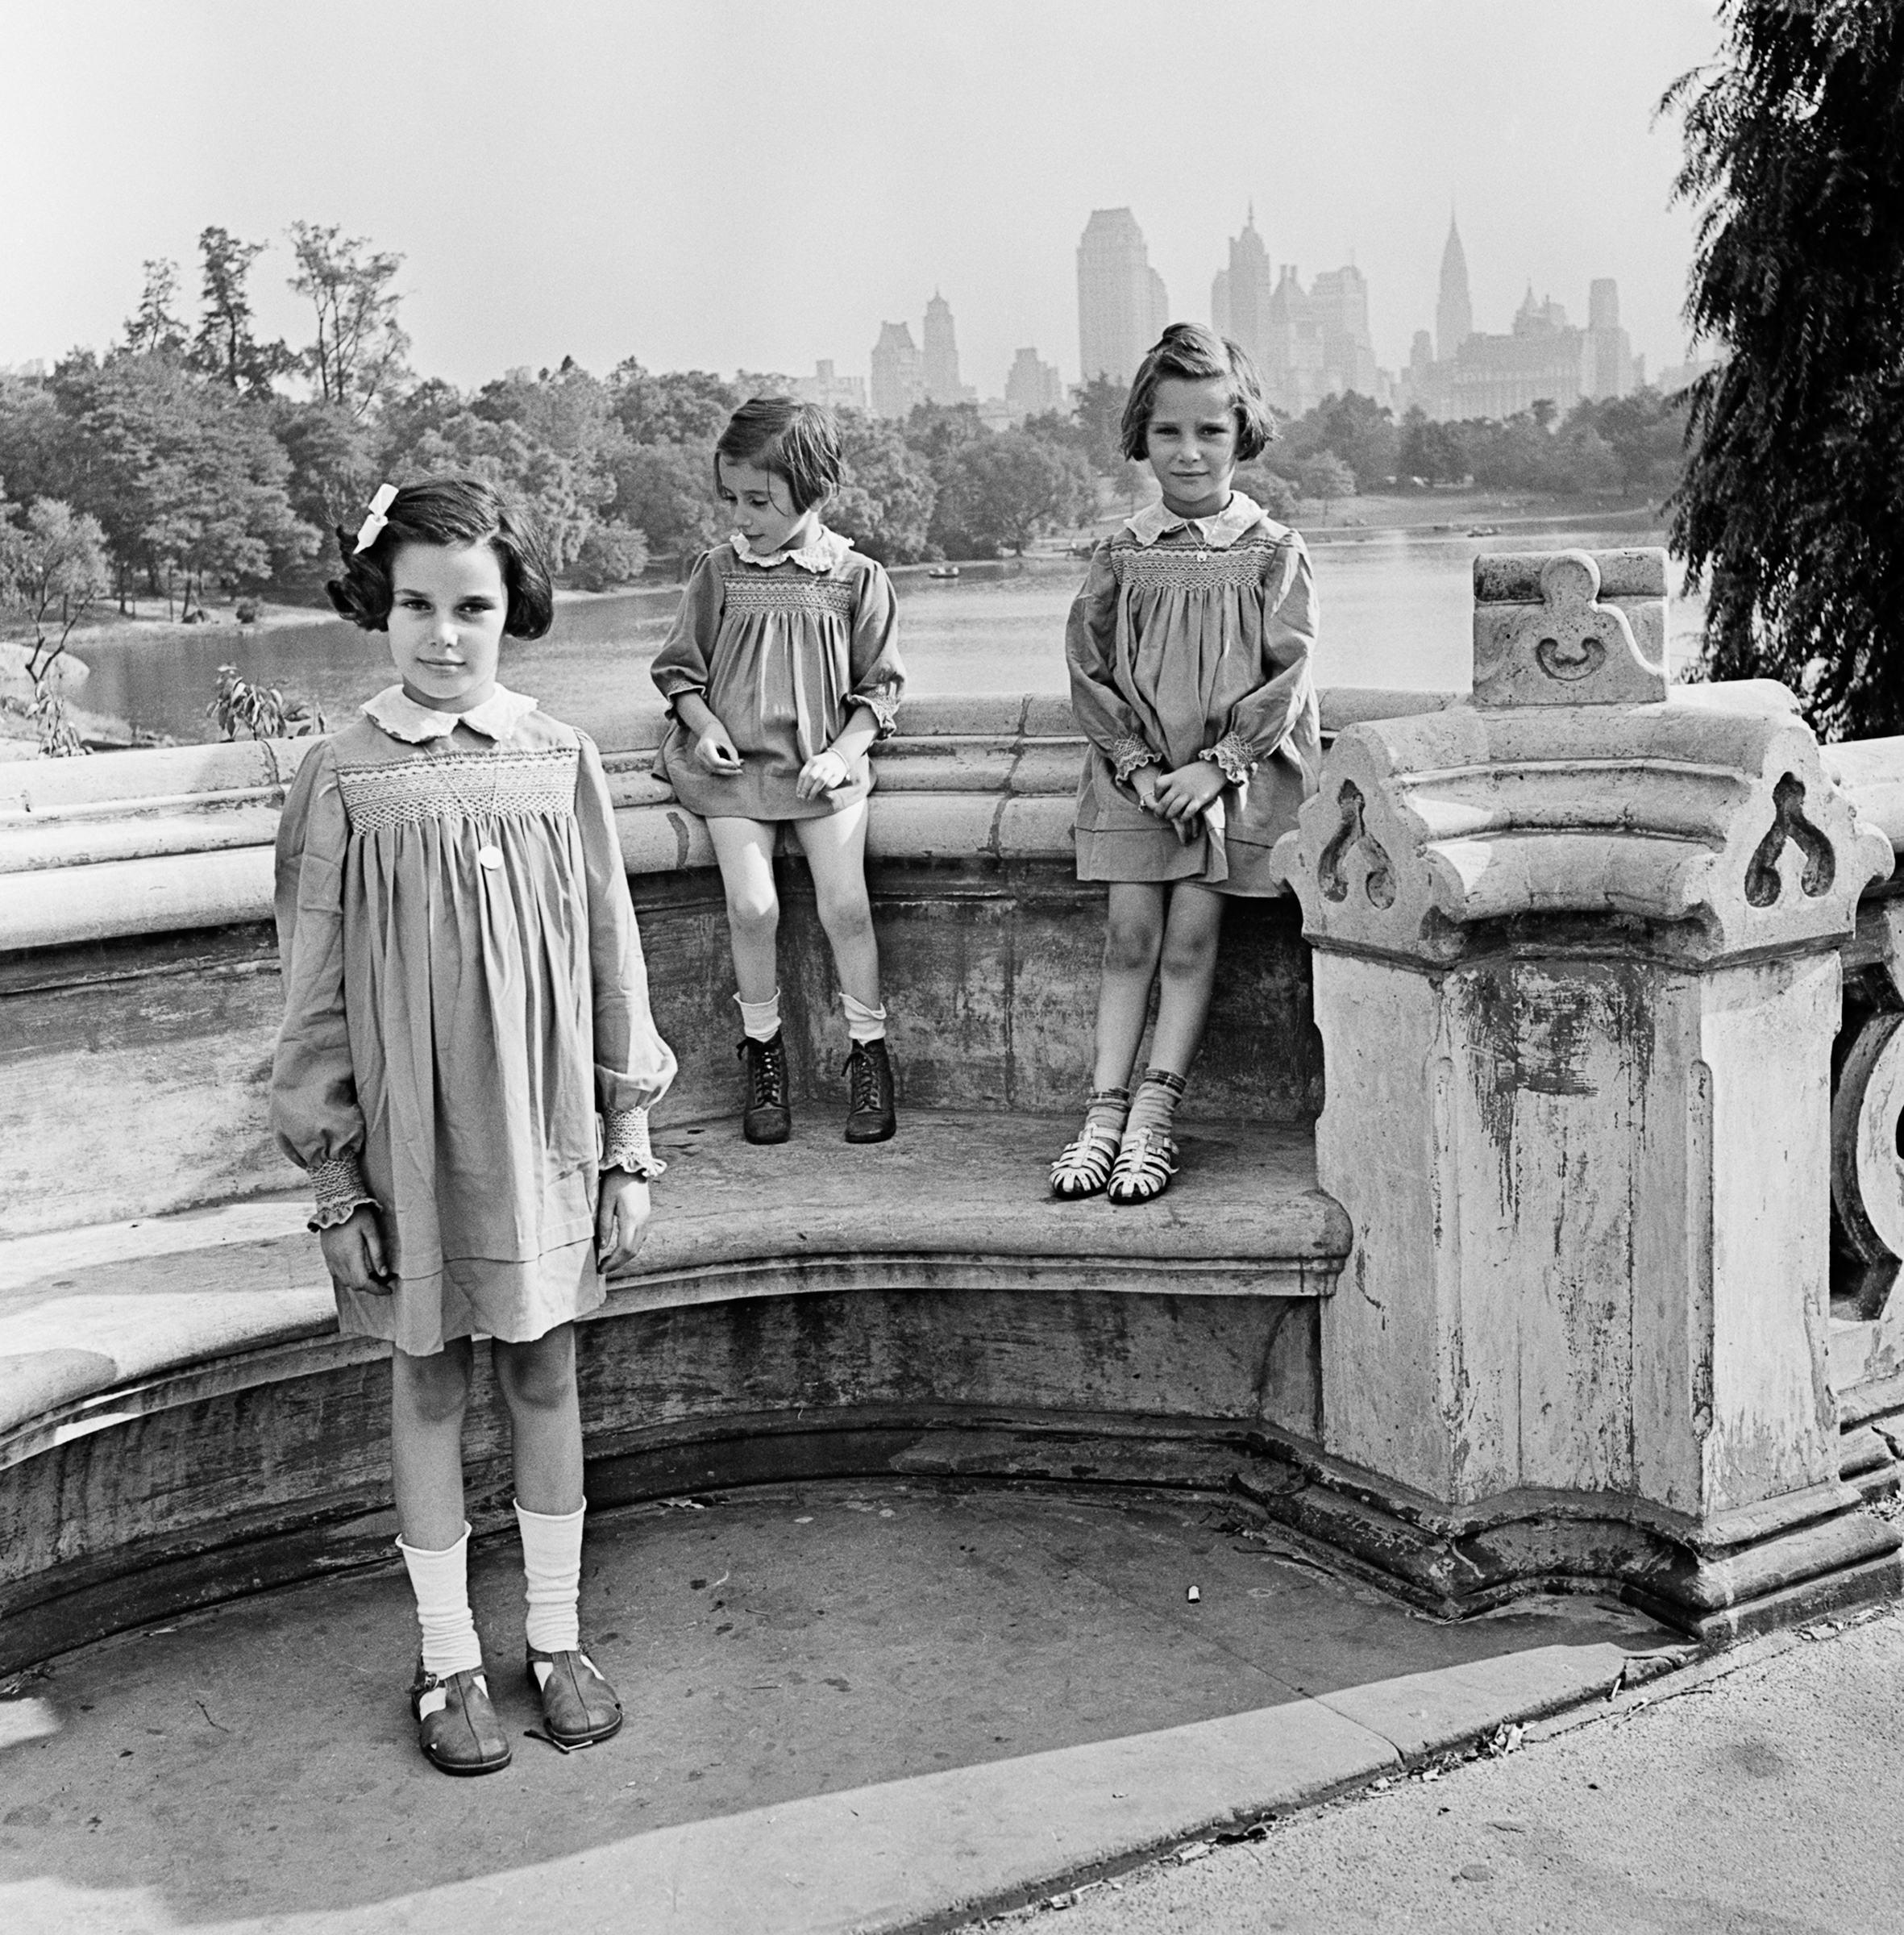 Sisters Marion, Renate, and Karen Gumprecht, refugees assisted by the National Refugee Service (NRS) and Hebrew Immigrant Aid Society (HIAS), shortly after their arrival in the United States, Central Park, New York], 1941